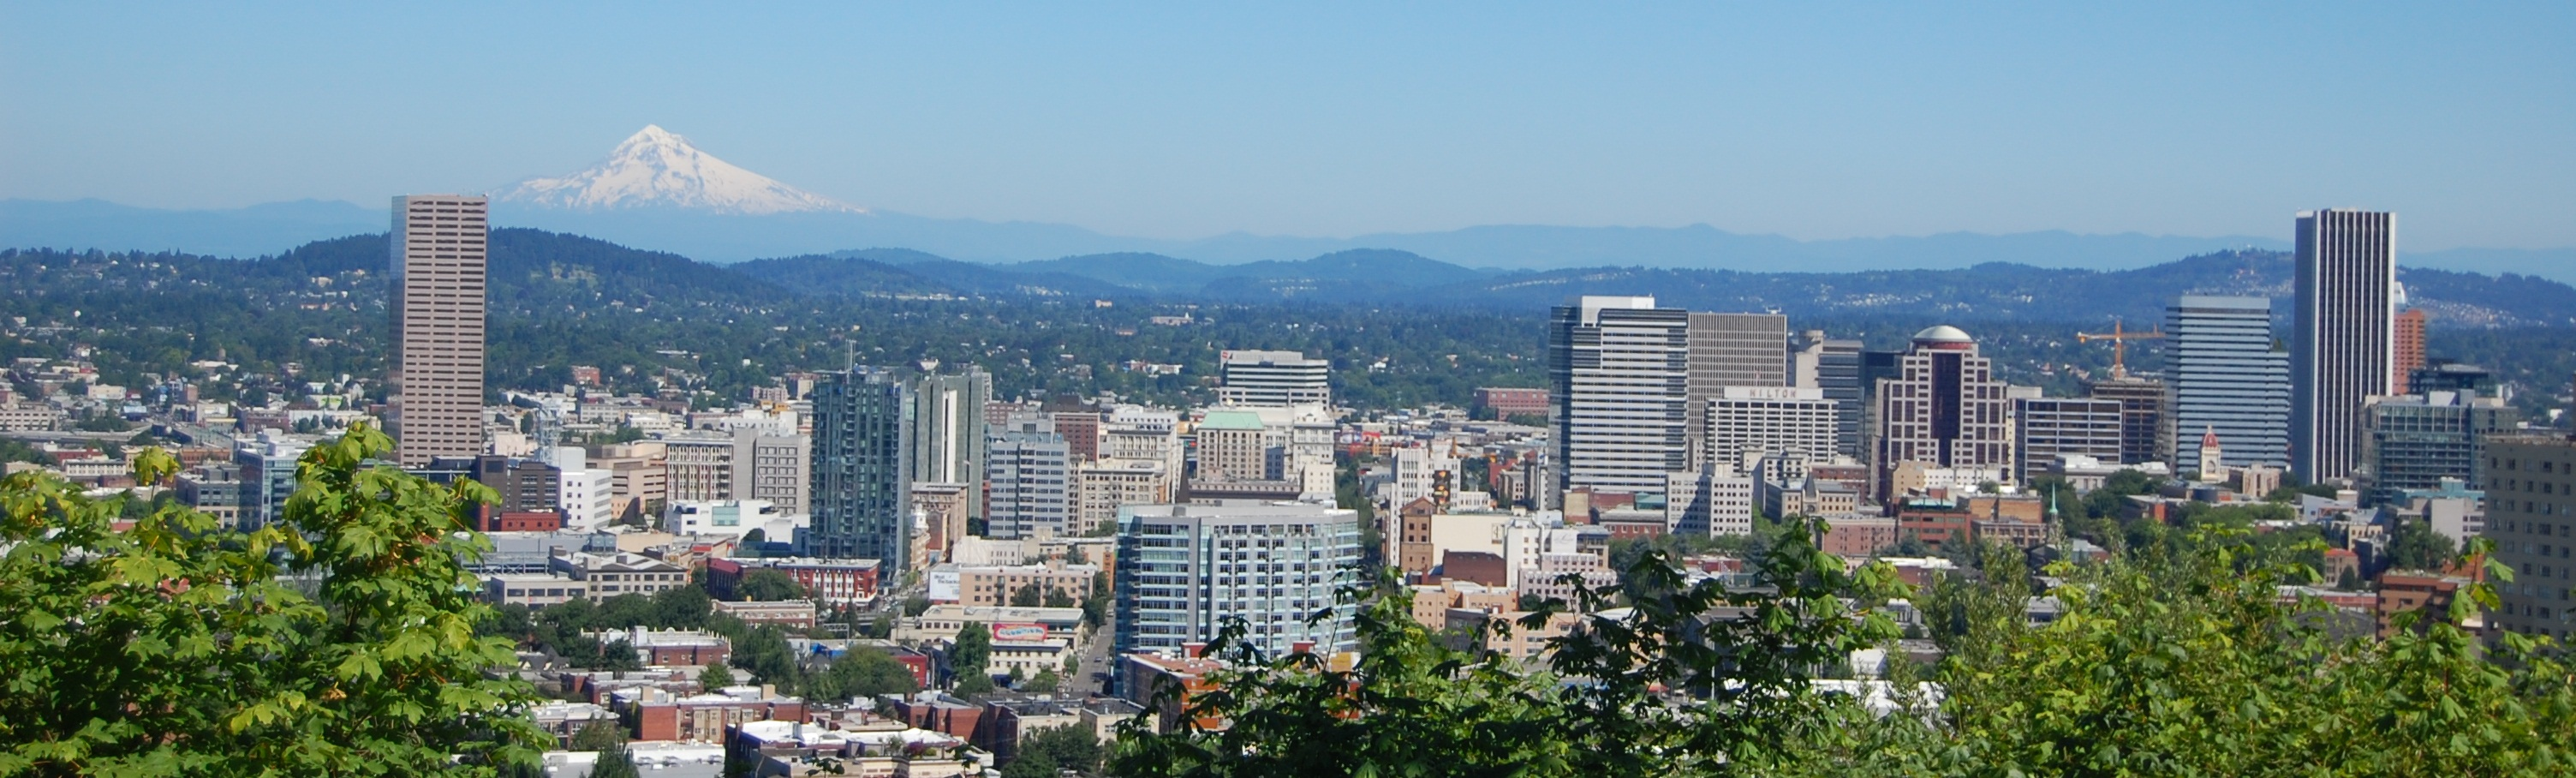 Image result for portland oregon skyline